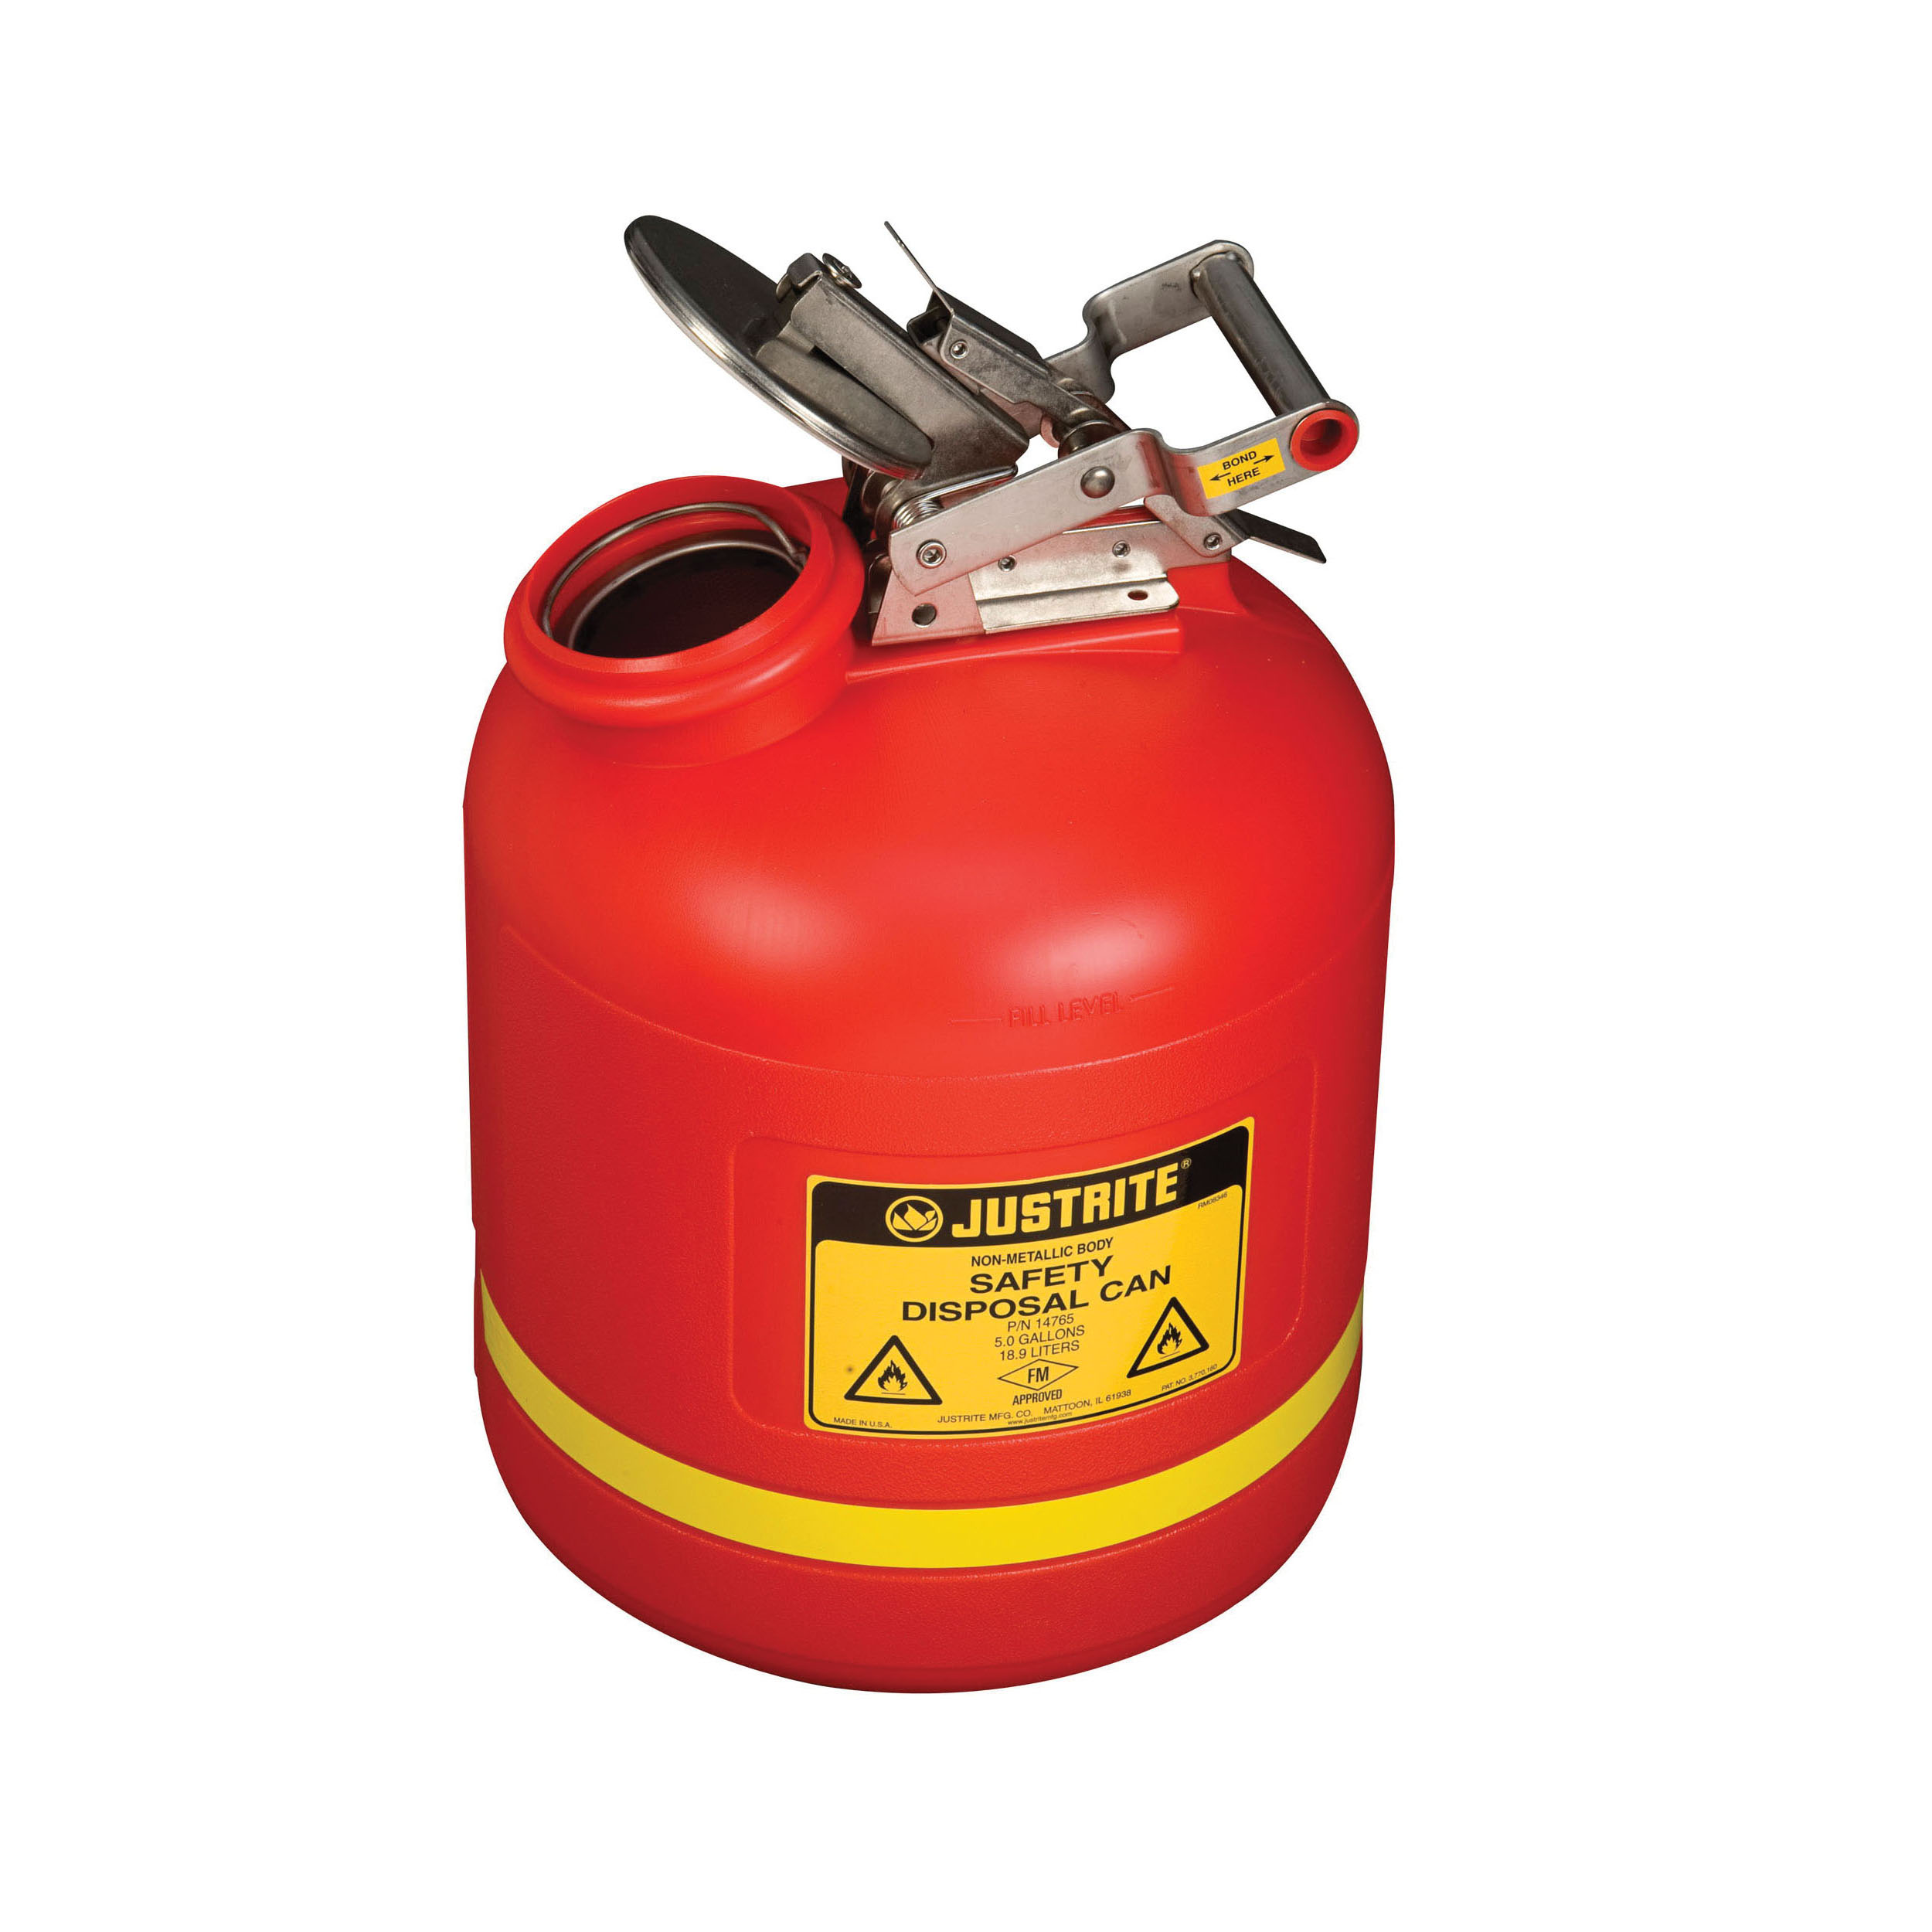 Justrite® 14765 Liquid Disposal Safety Can With Stainless Steel Hardware, 5 gal Capacity, 12 in Dia, 20 in H, Polyethylene, Red, FM Approved, OSHA Approved, NFPA 30